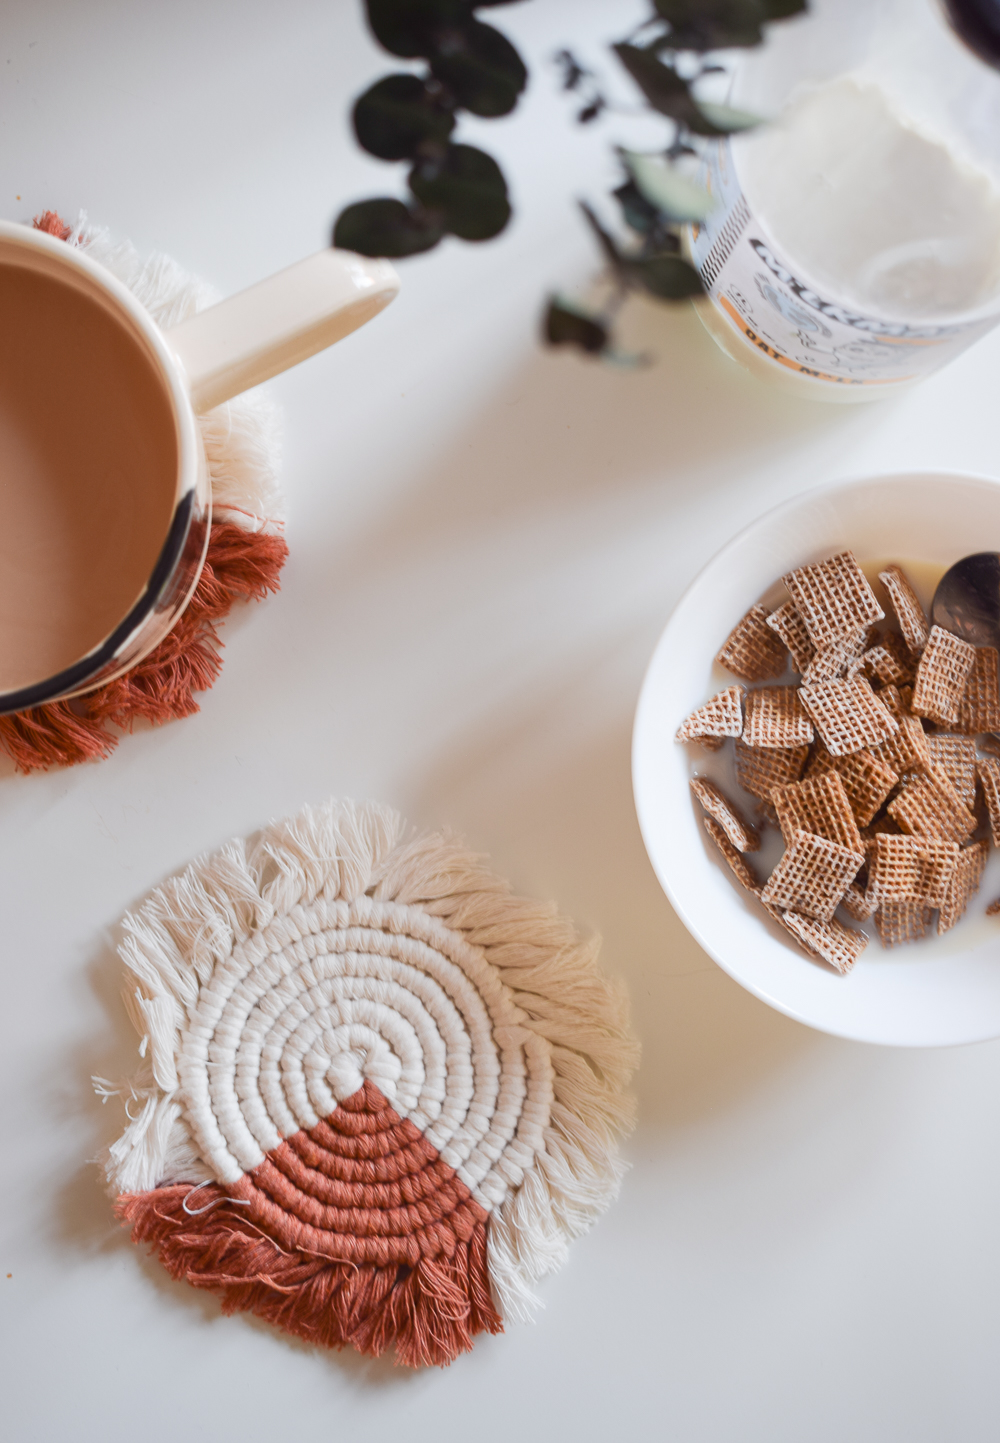 MACRAME COASTERS ON A WHITE TABLE NEXT TO A BOWL OF CEREAL